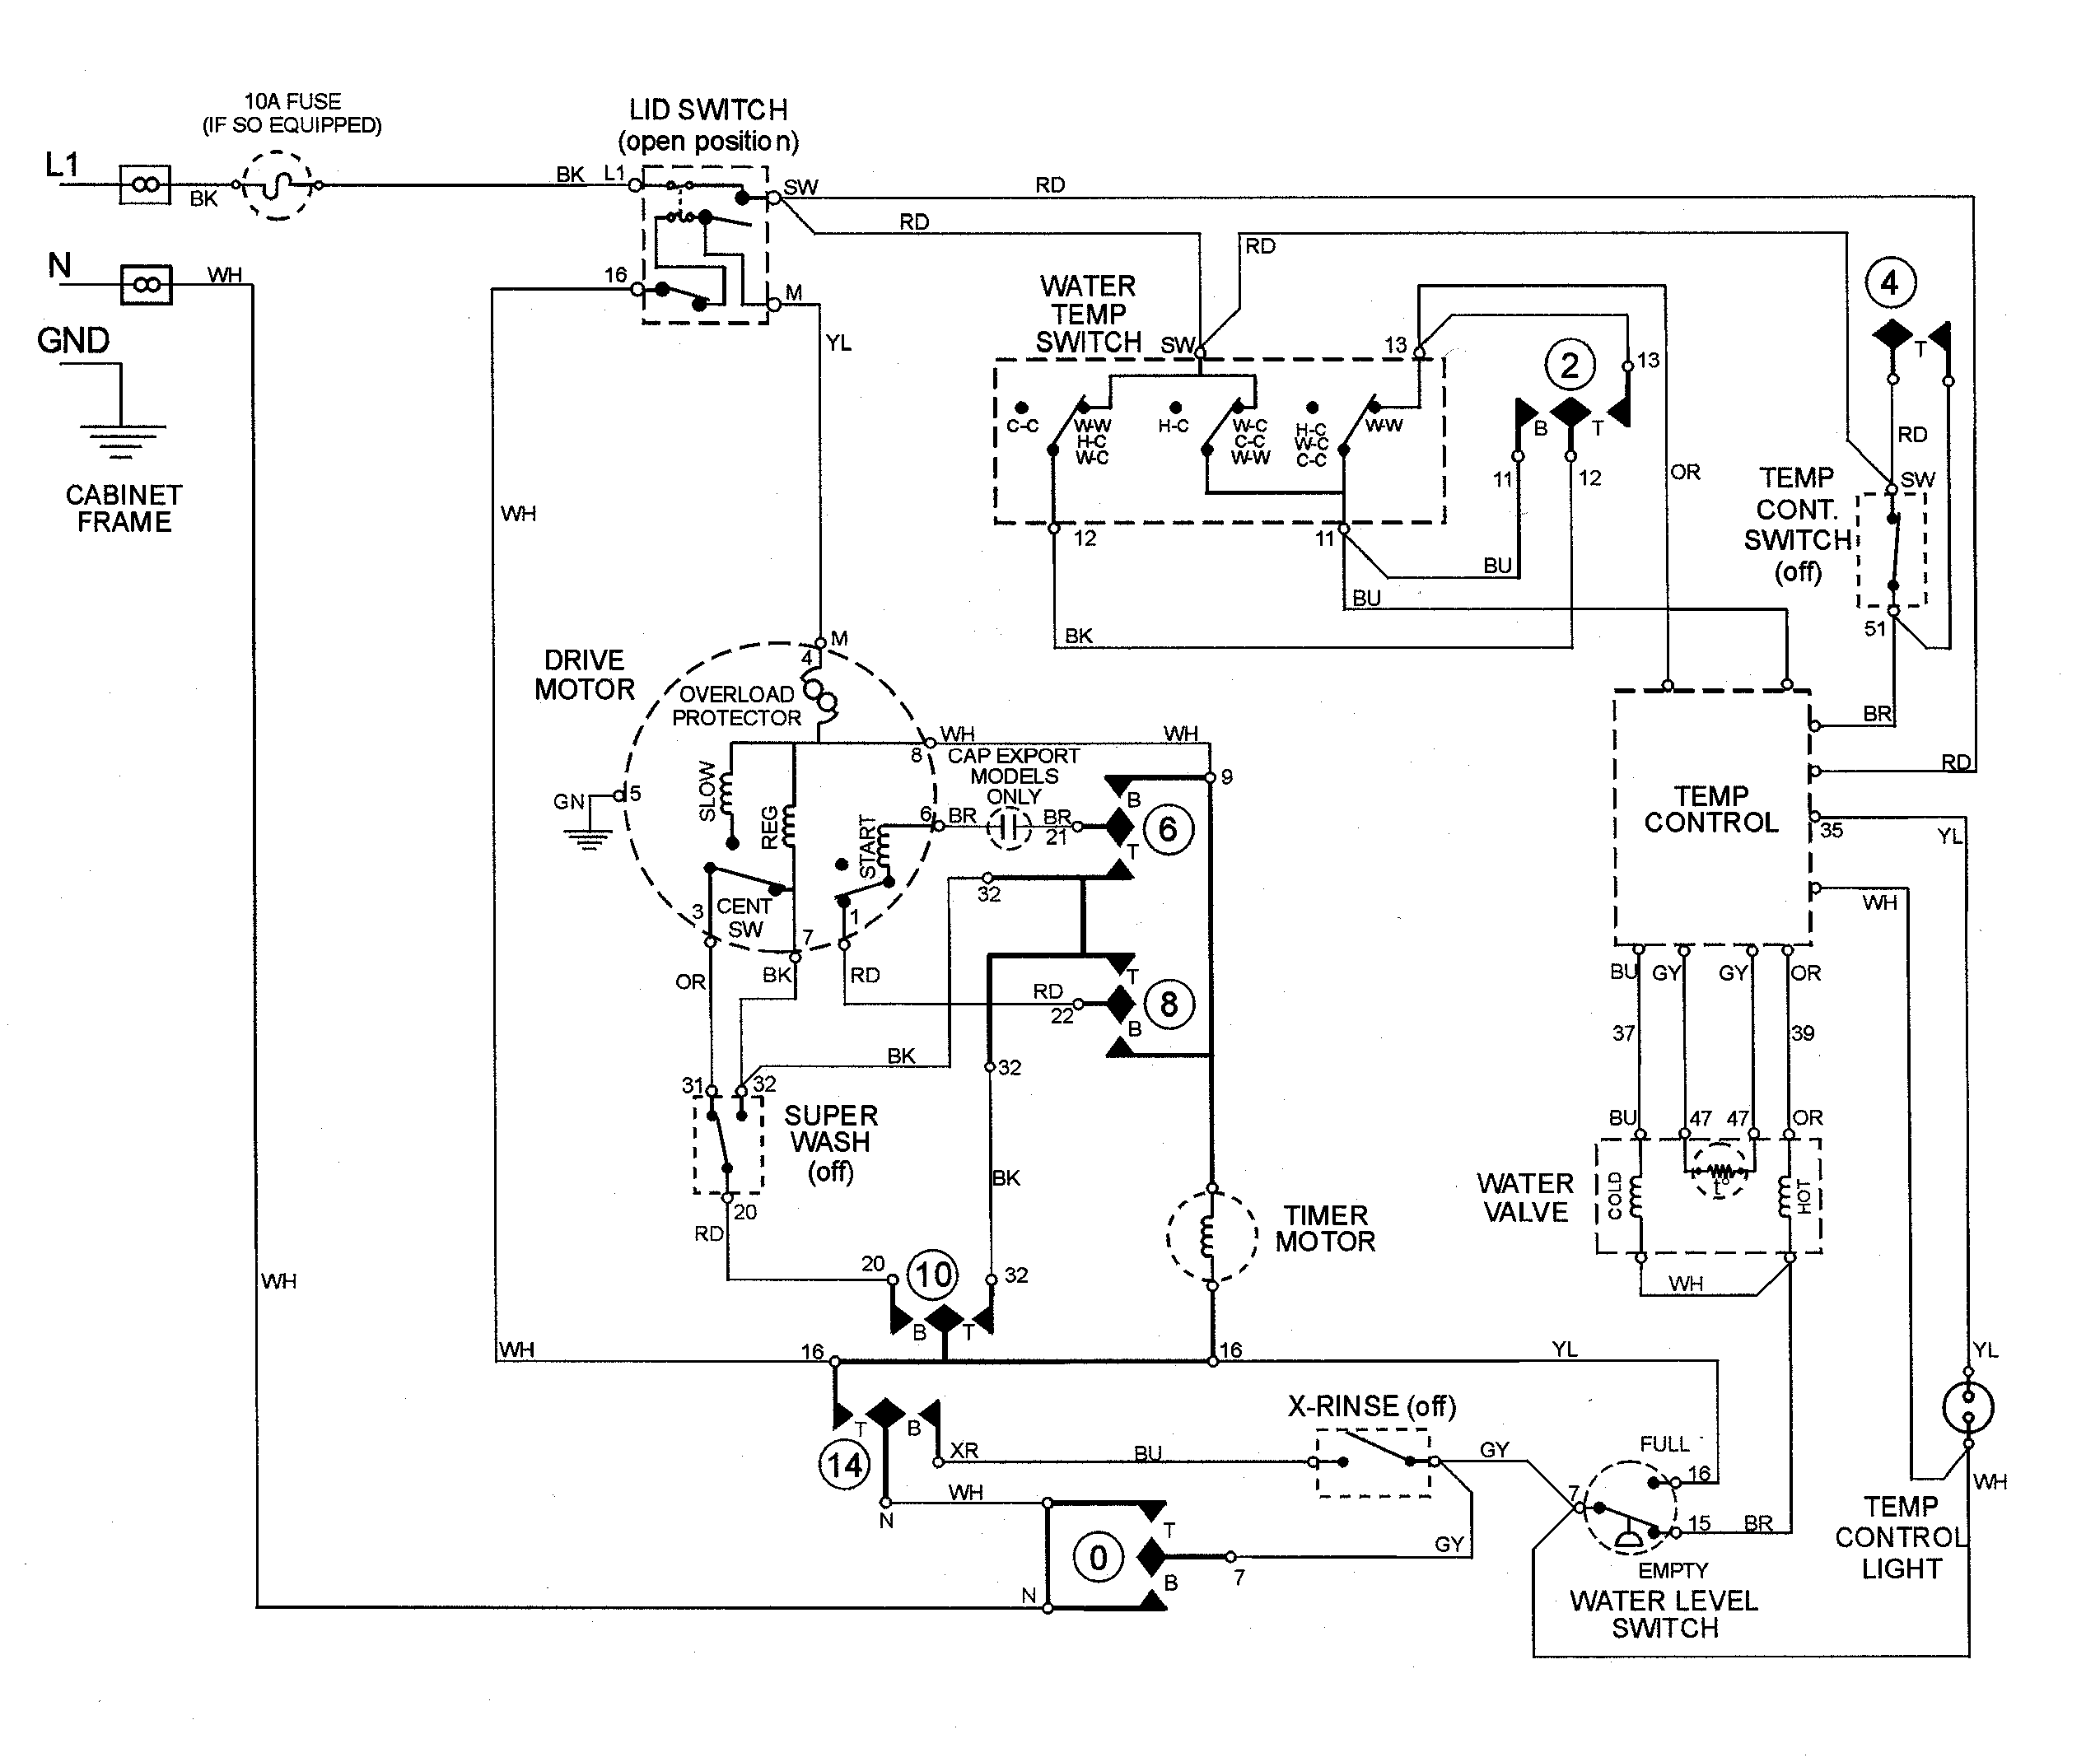 Ge Washing Machine Motor Wiring Diagram And Fan Cycle Switch